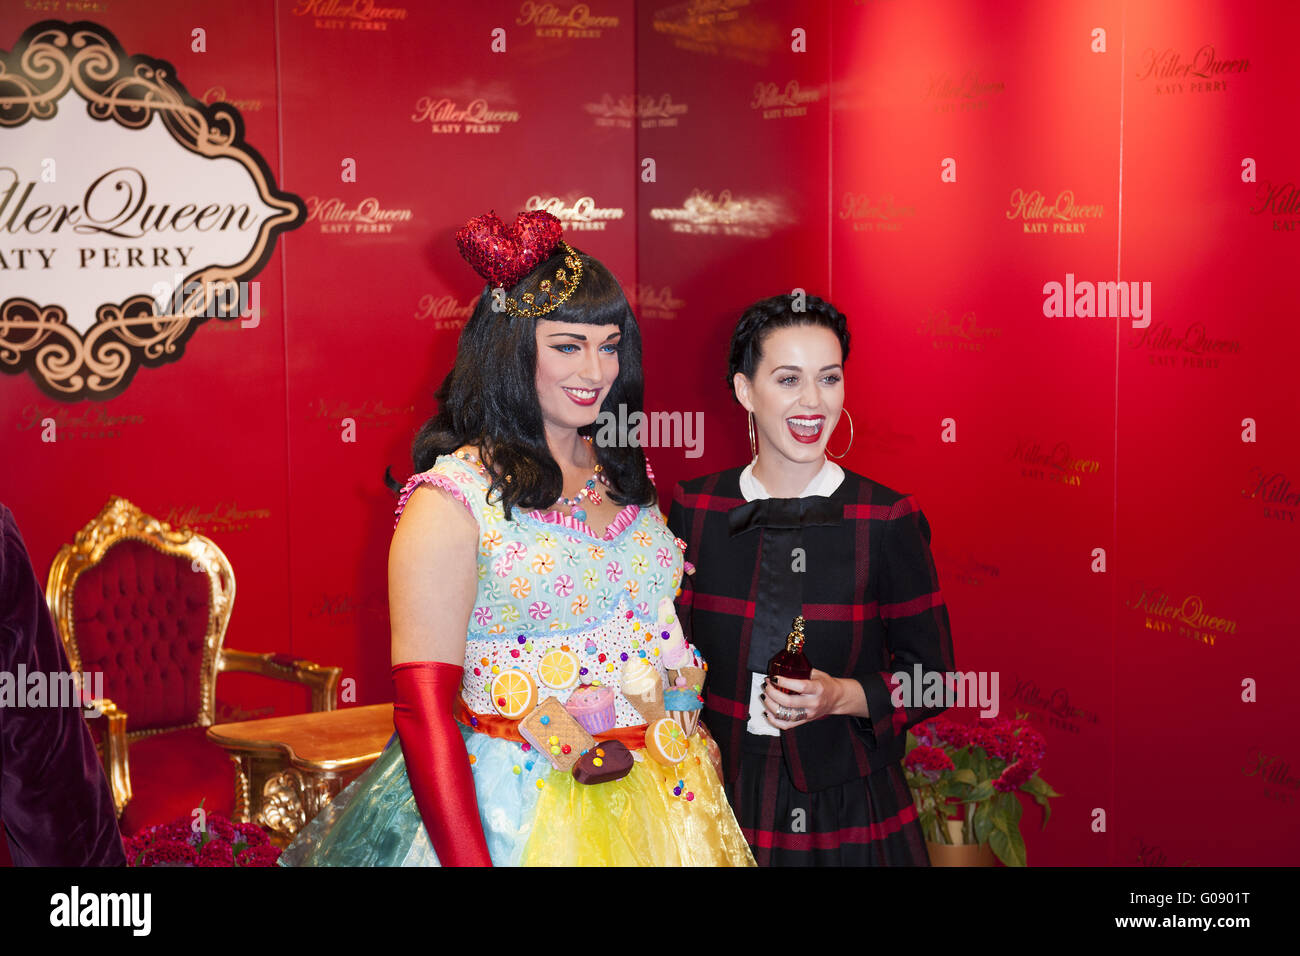 Katy Perry launches her new fragrance in Berlin. - Stock Image